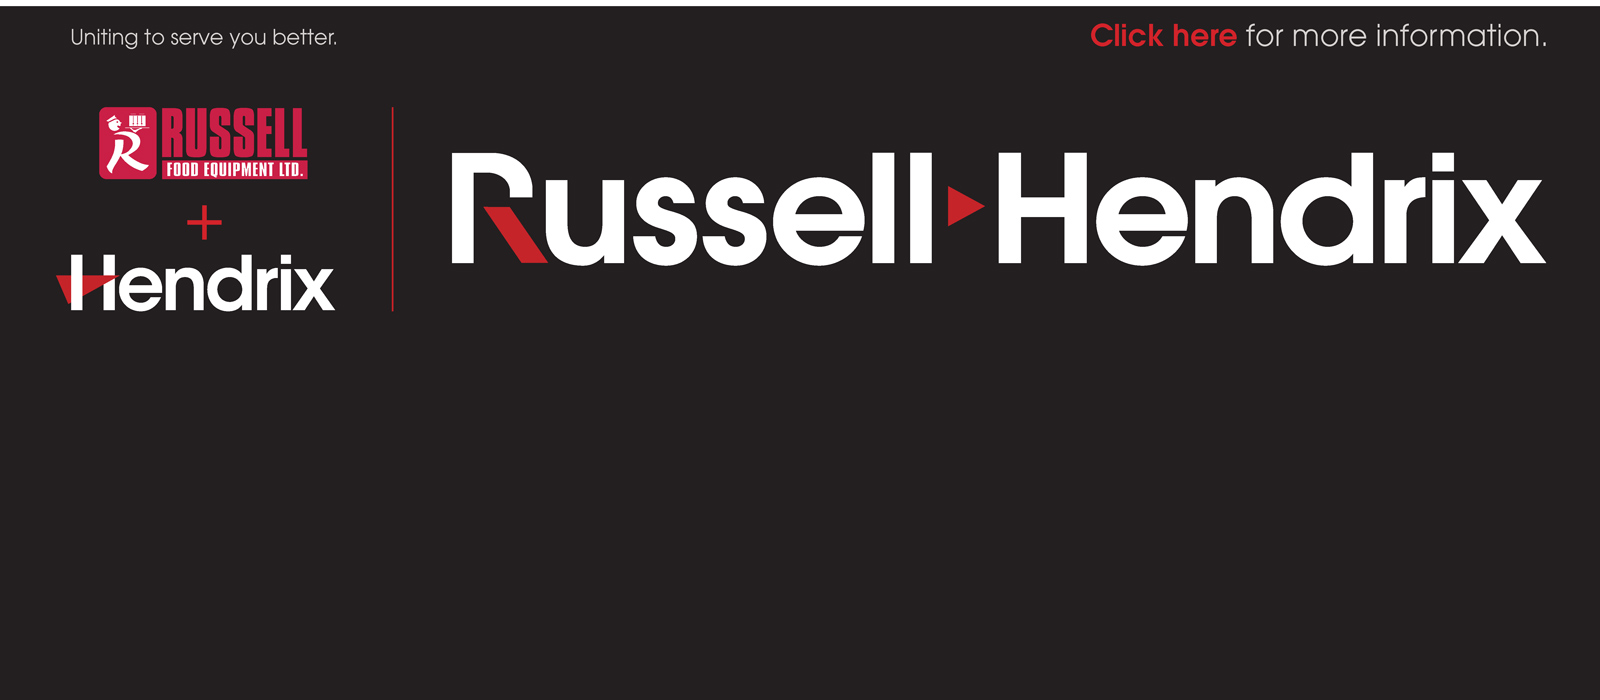 Russell Hendrix Russell Merge